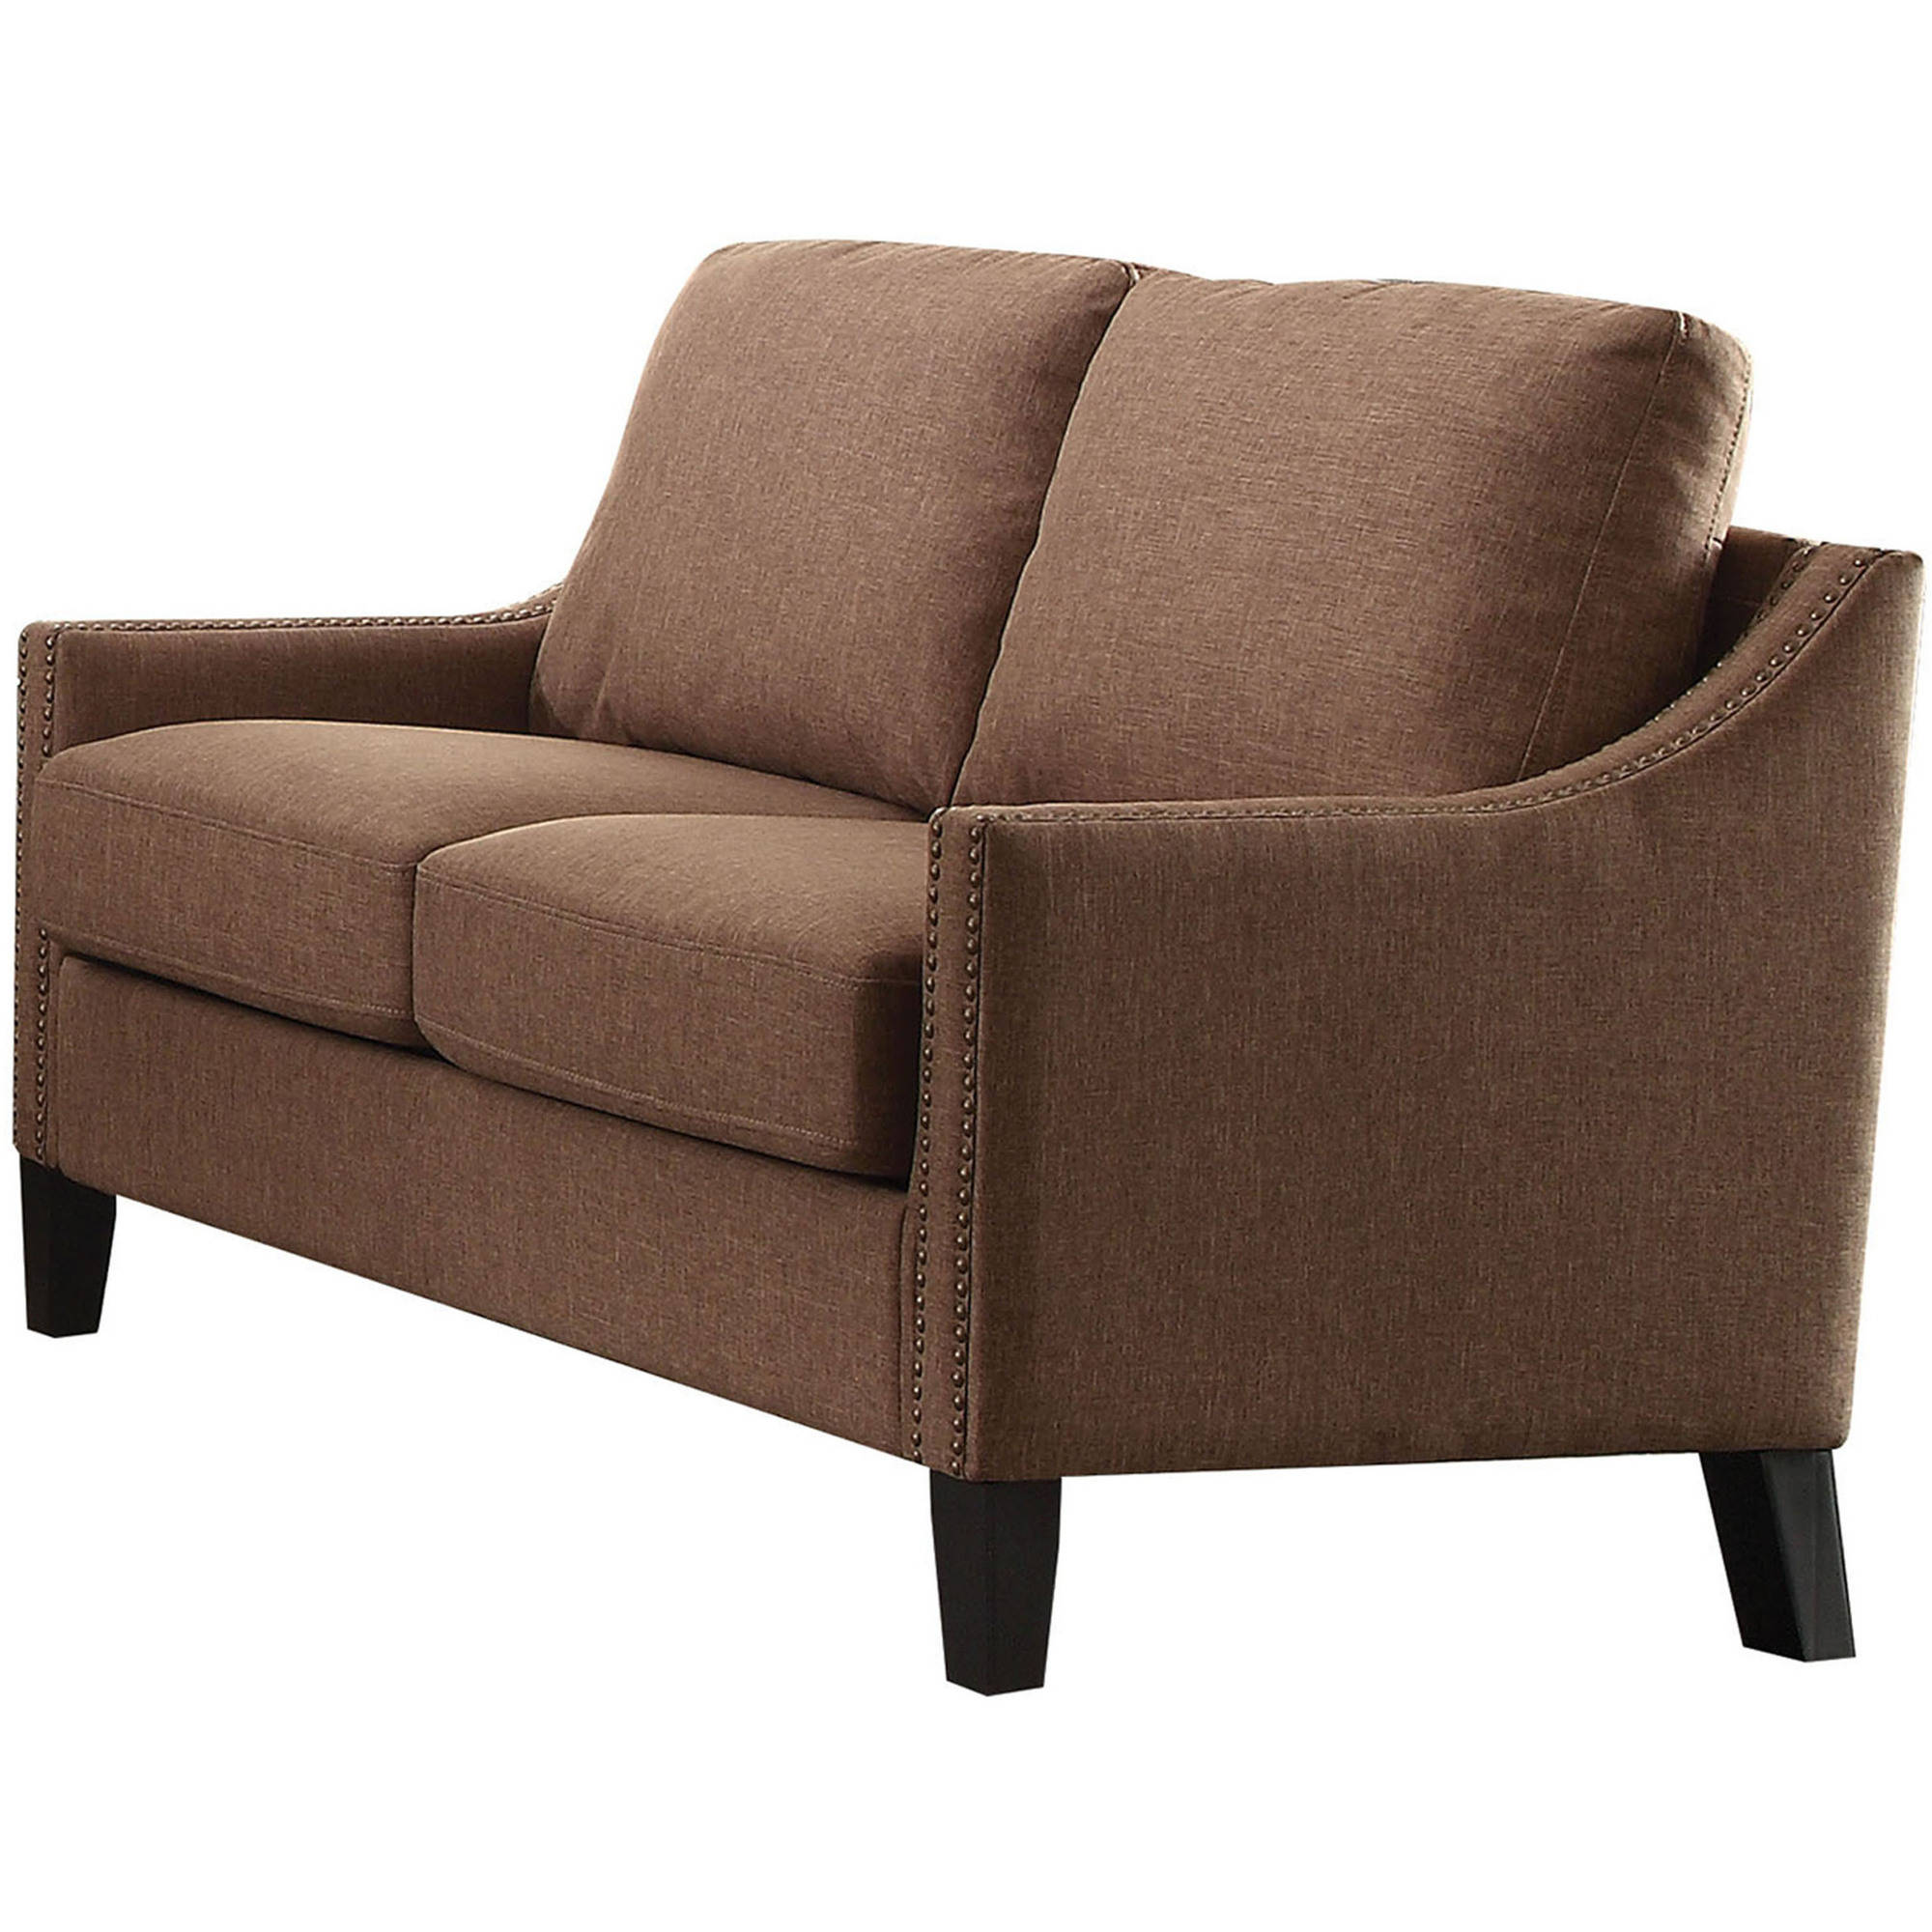 ACME Zapata Nail-head Loveseat in Multiple Colored Linen